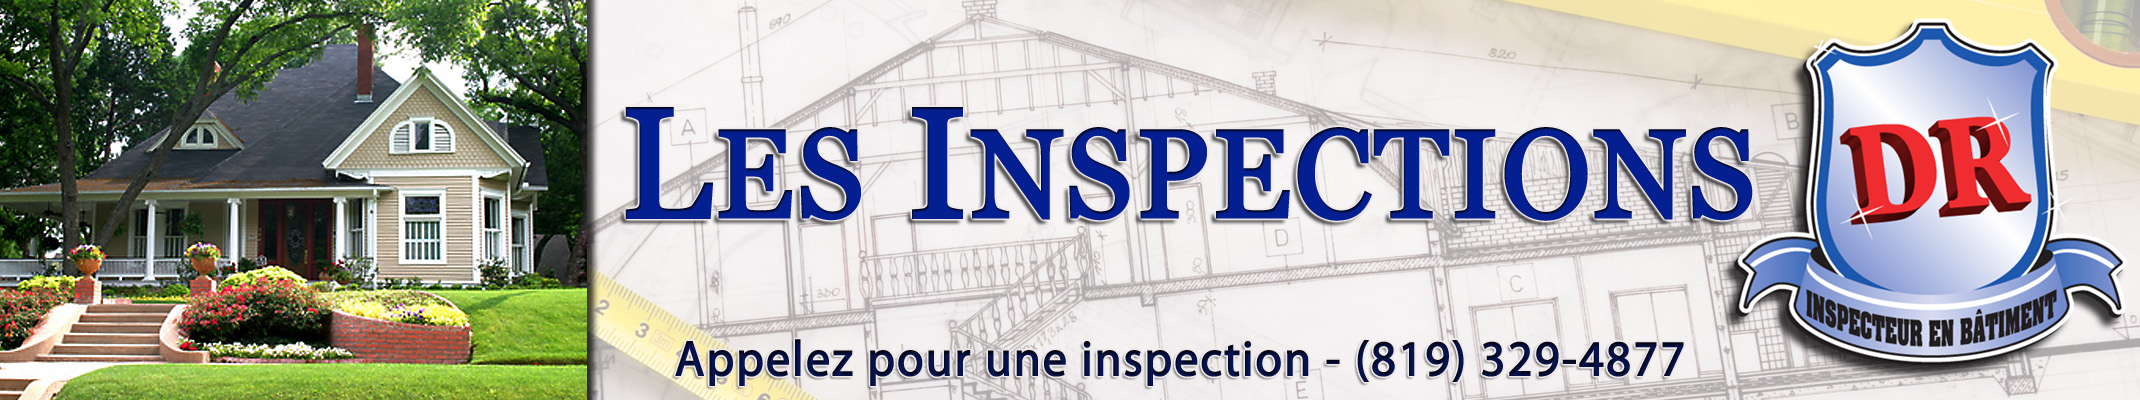 Les Inspections DR-Banner